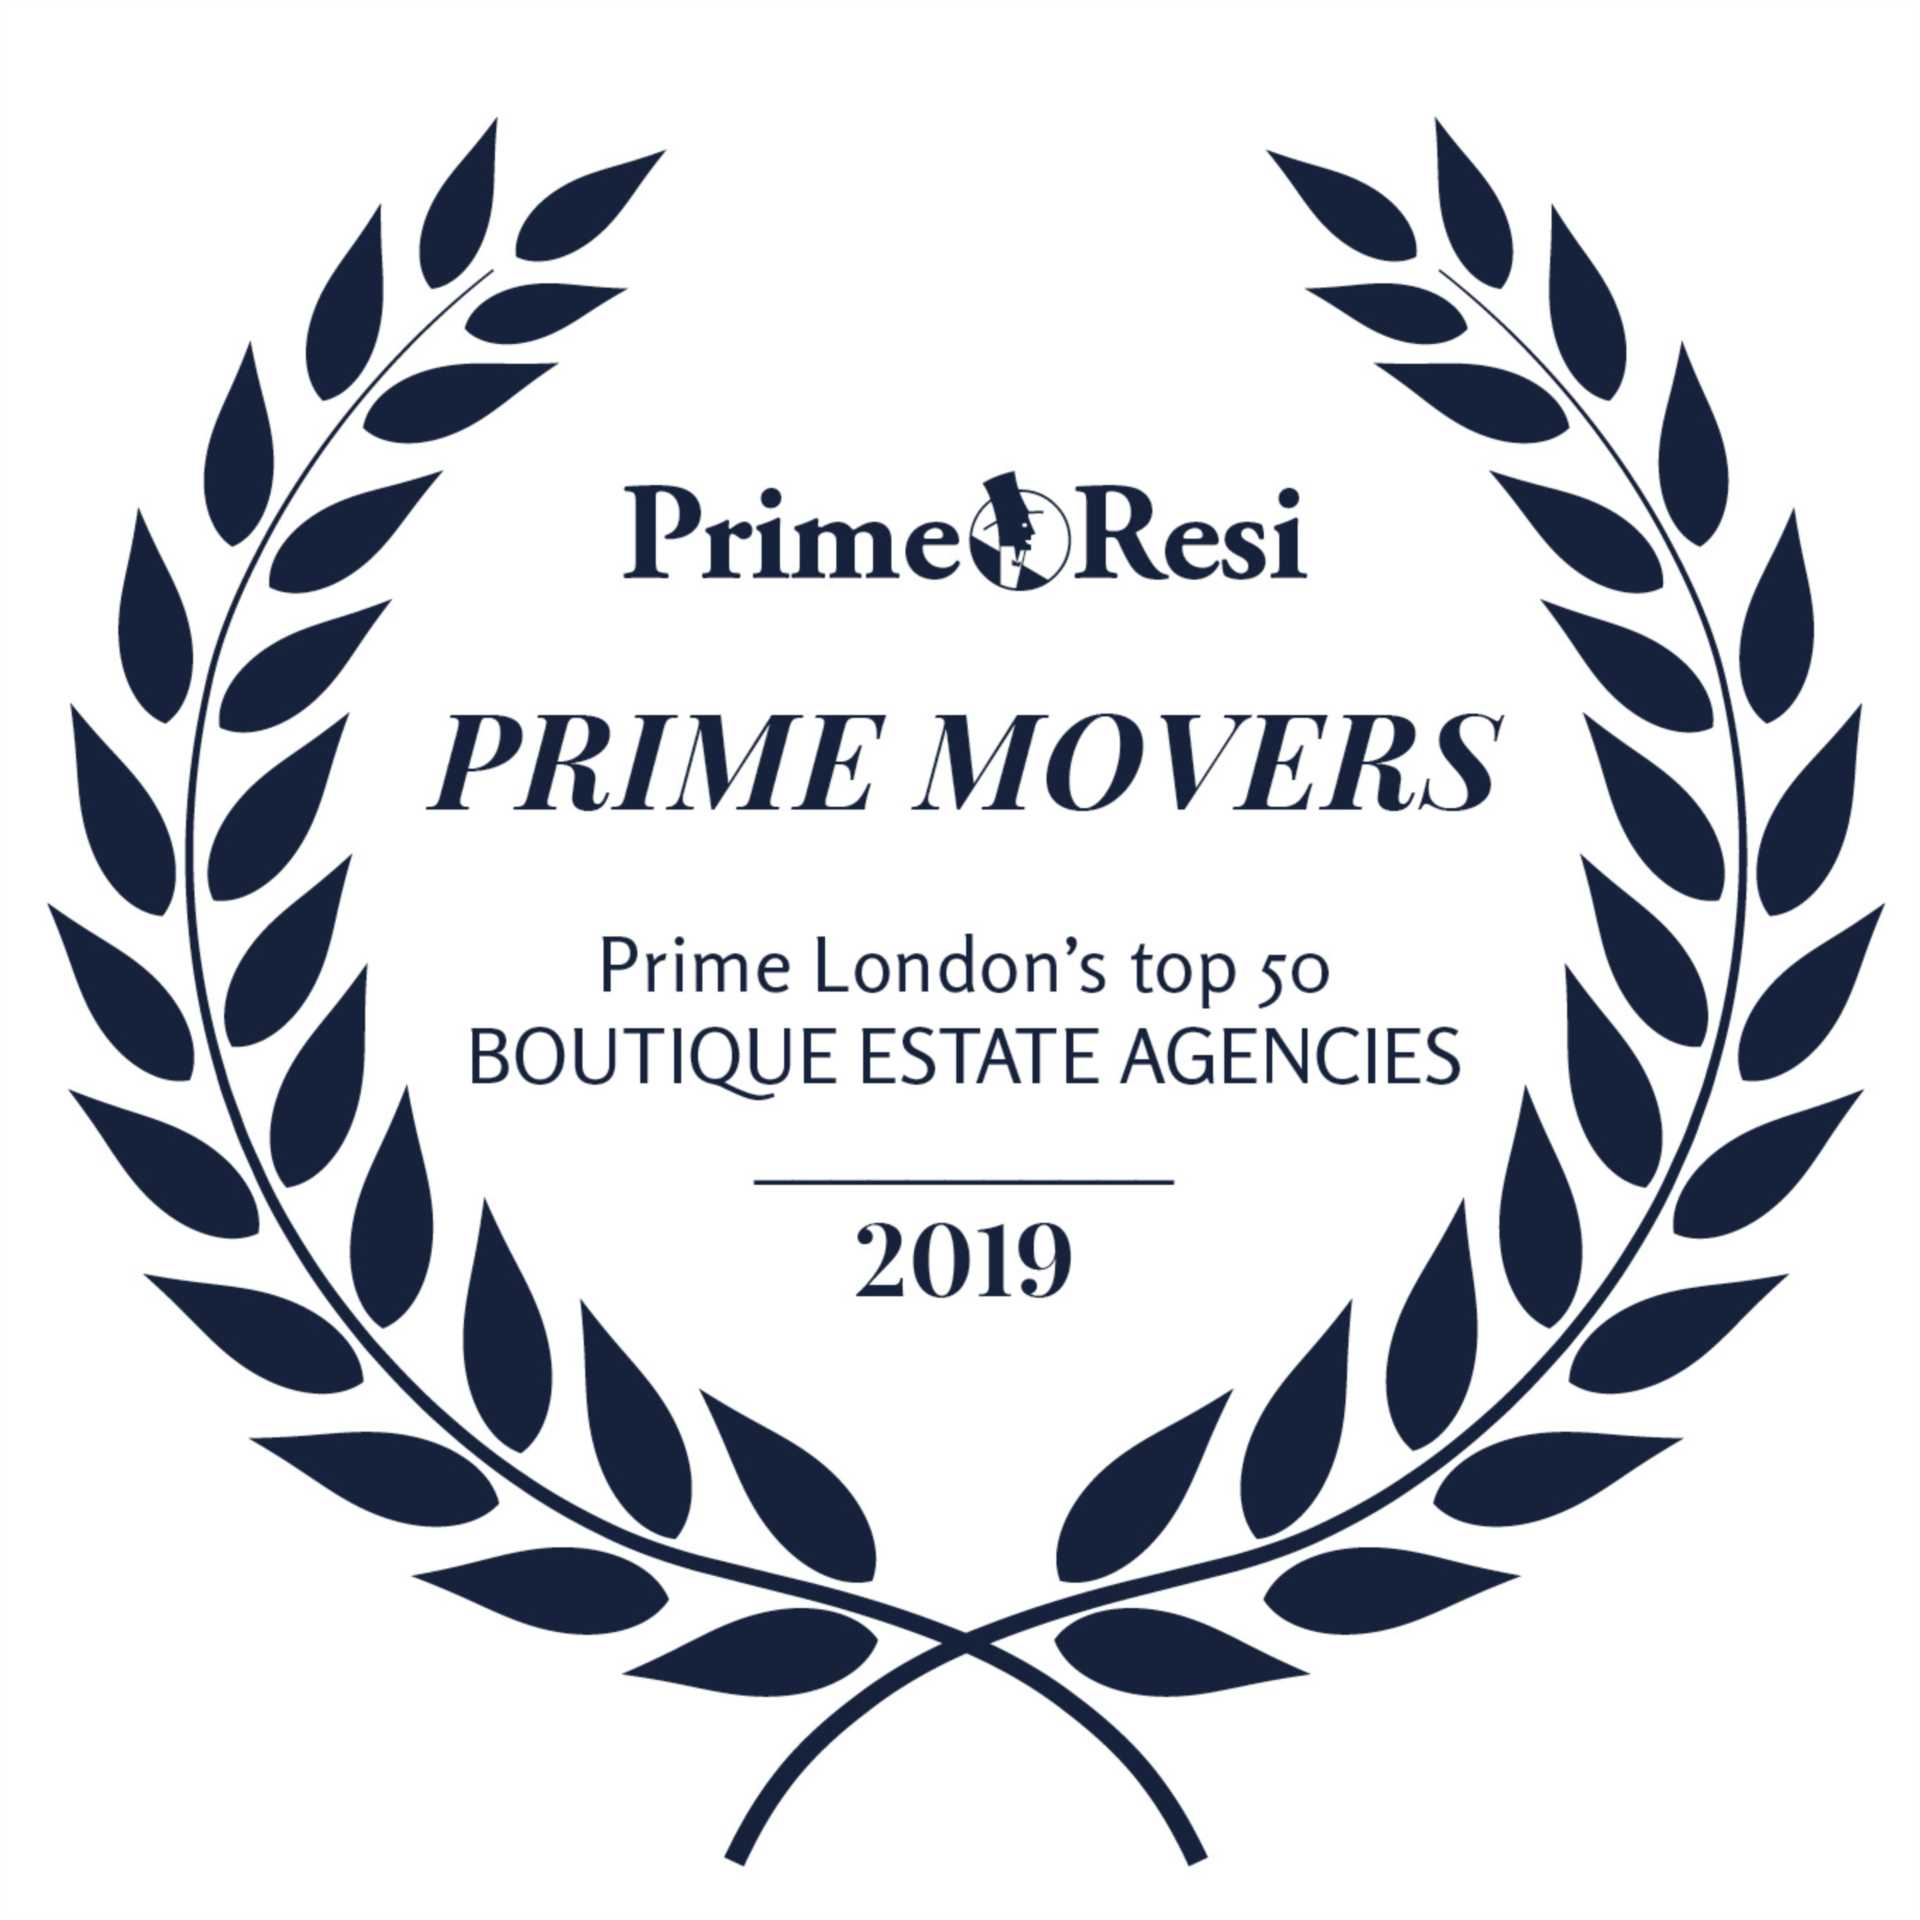 Jo Webster have again been listed in Prime Resi`s top 50 Boutique estate agents in 2019